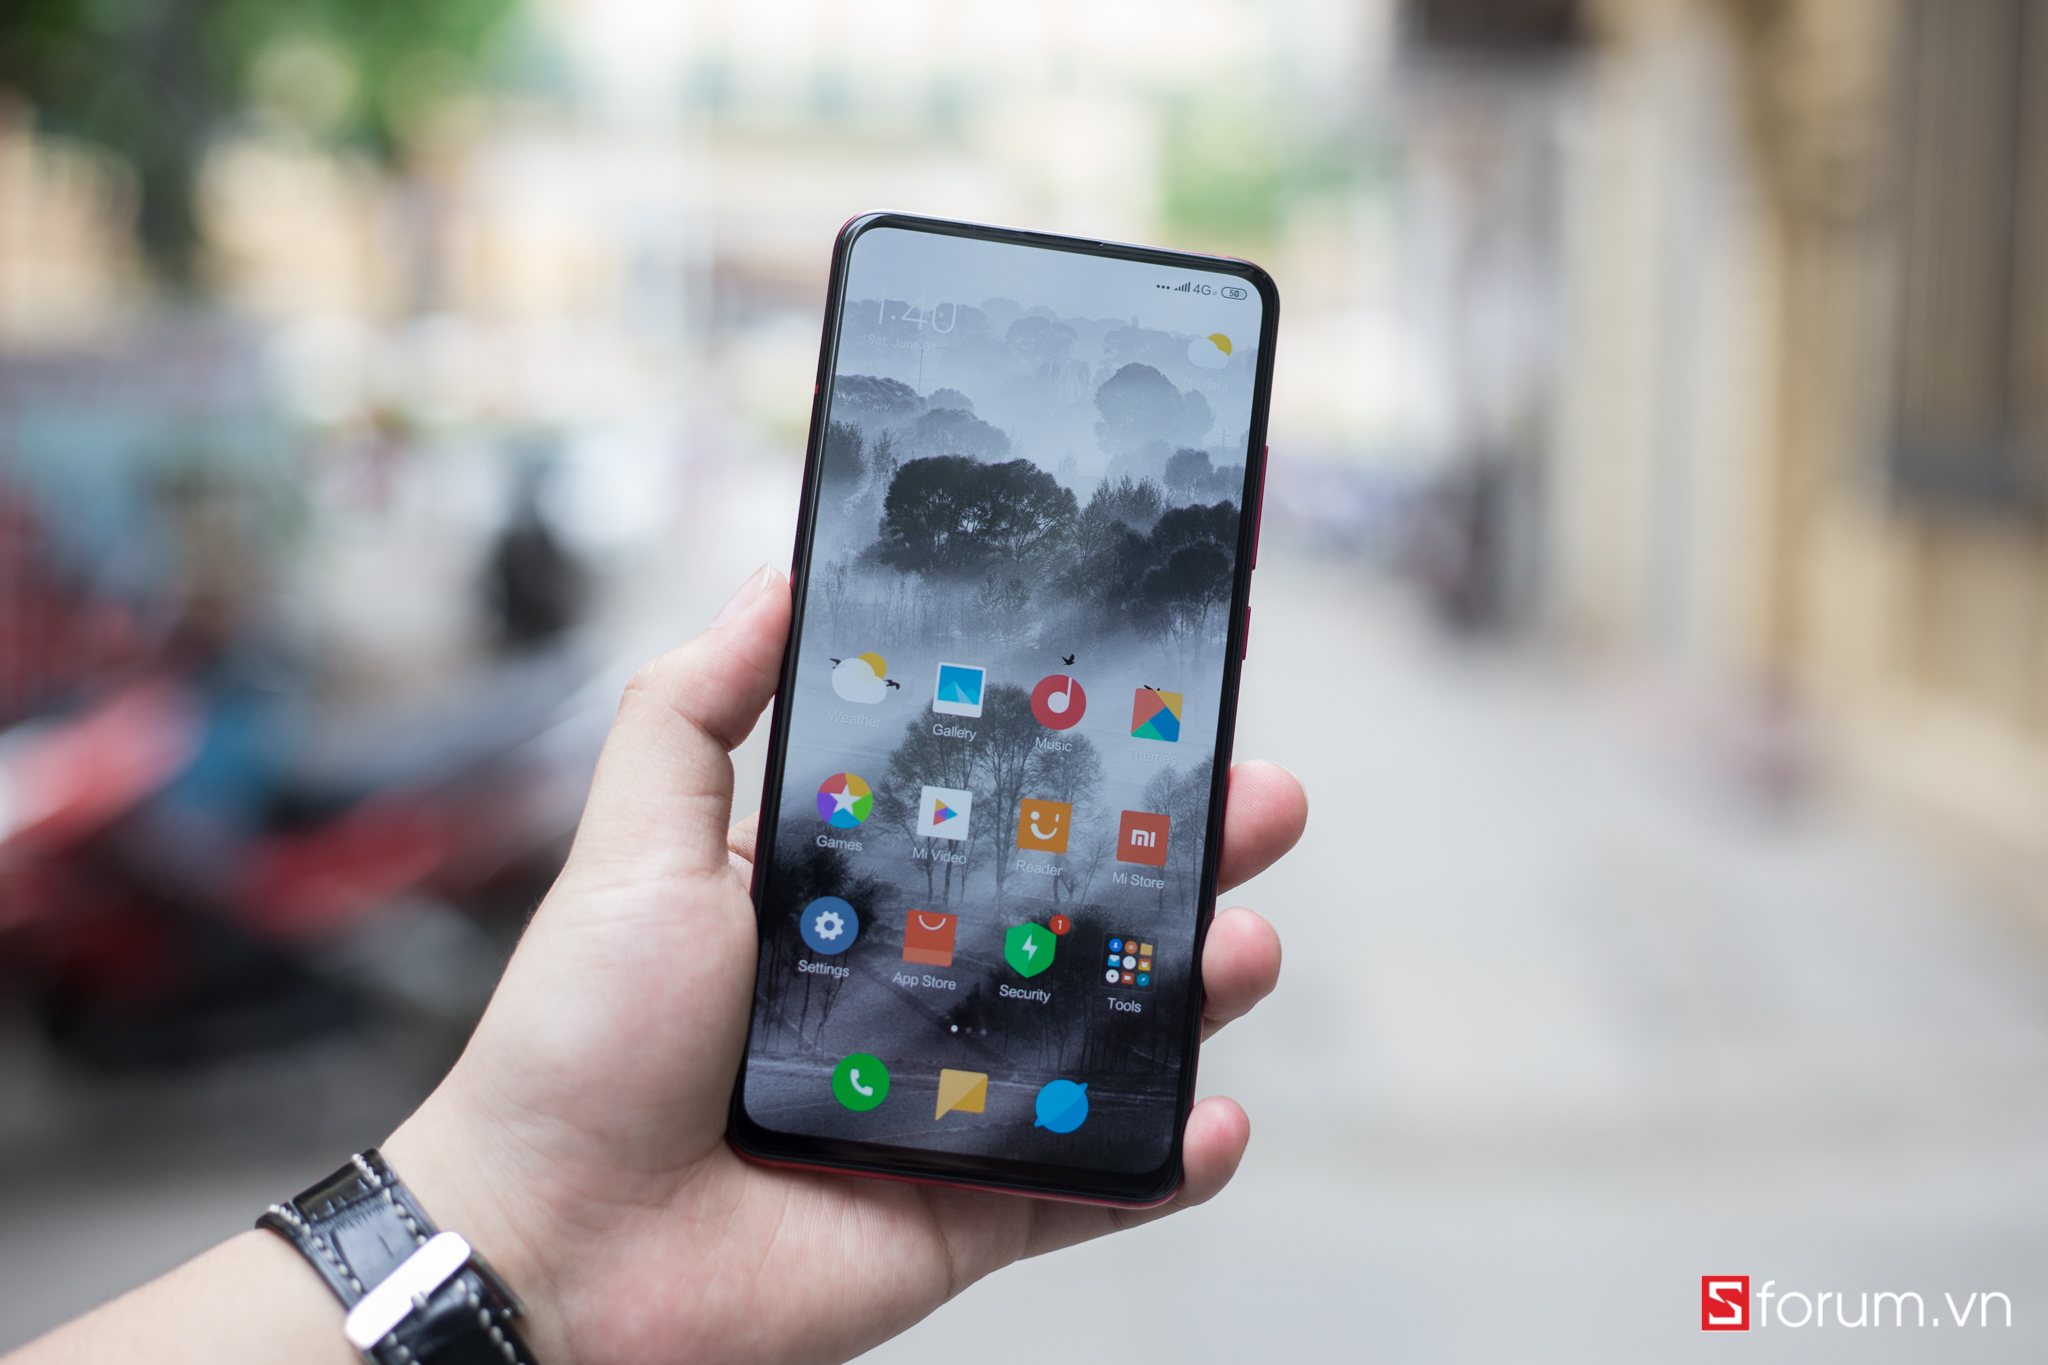 Sforum - Latest technology information page untitled-28 On the first Redmi K20 Pro in Vietnam: